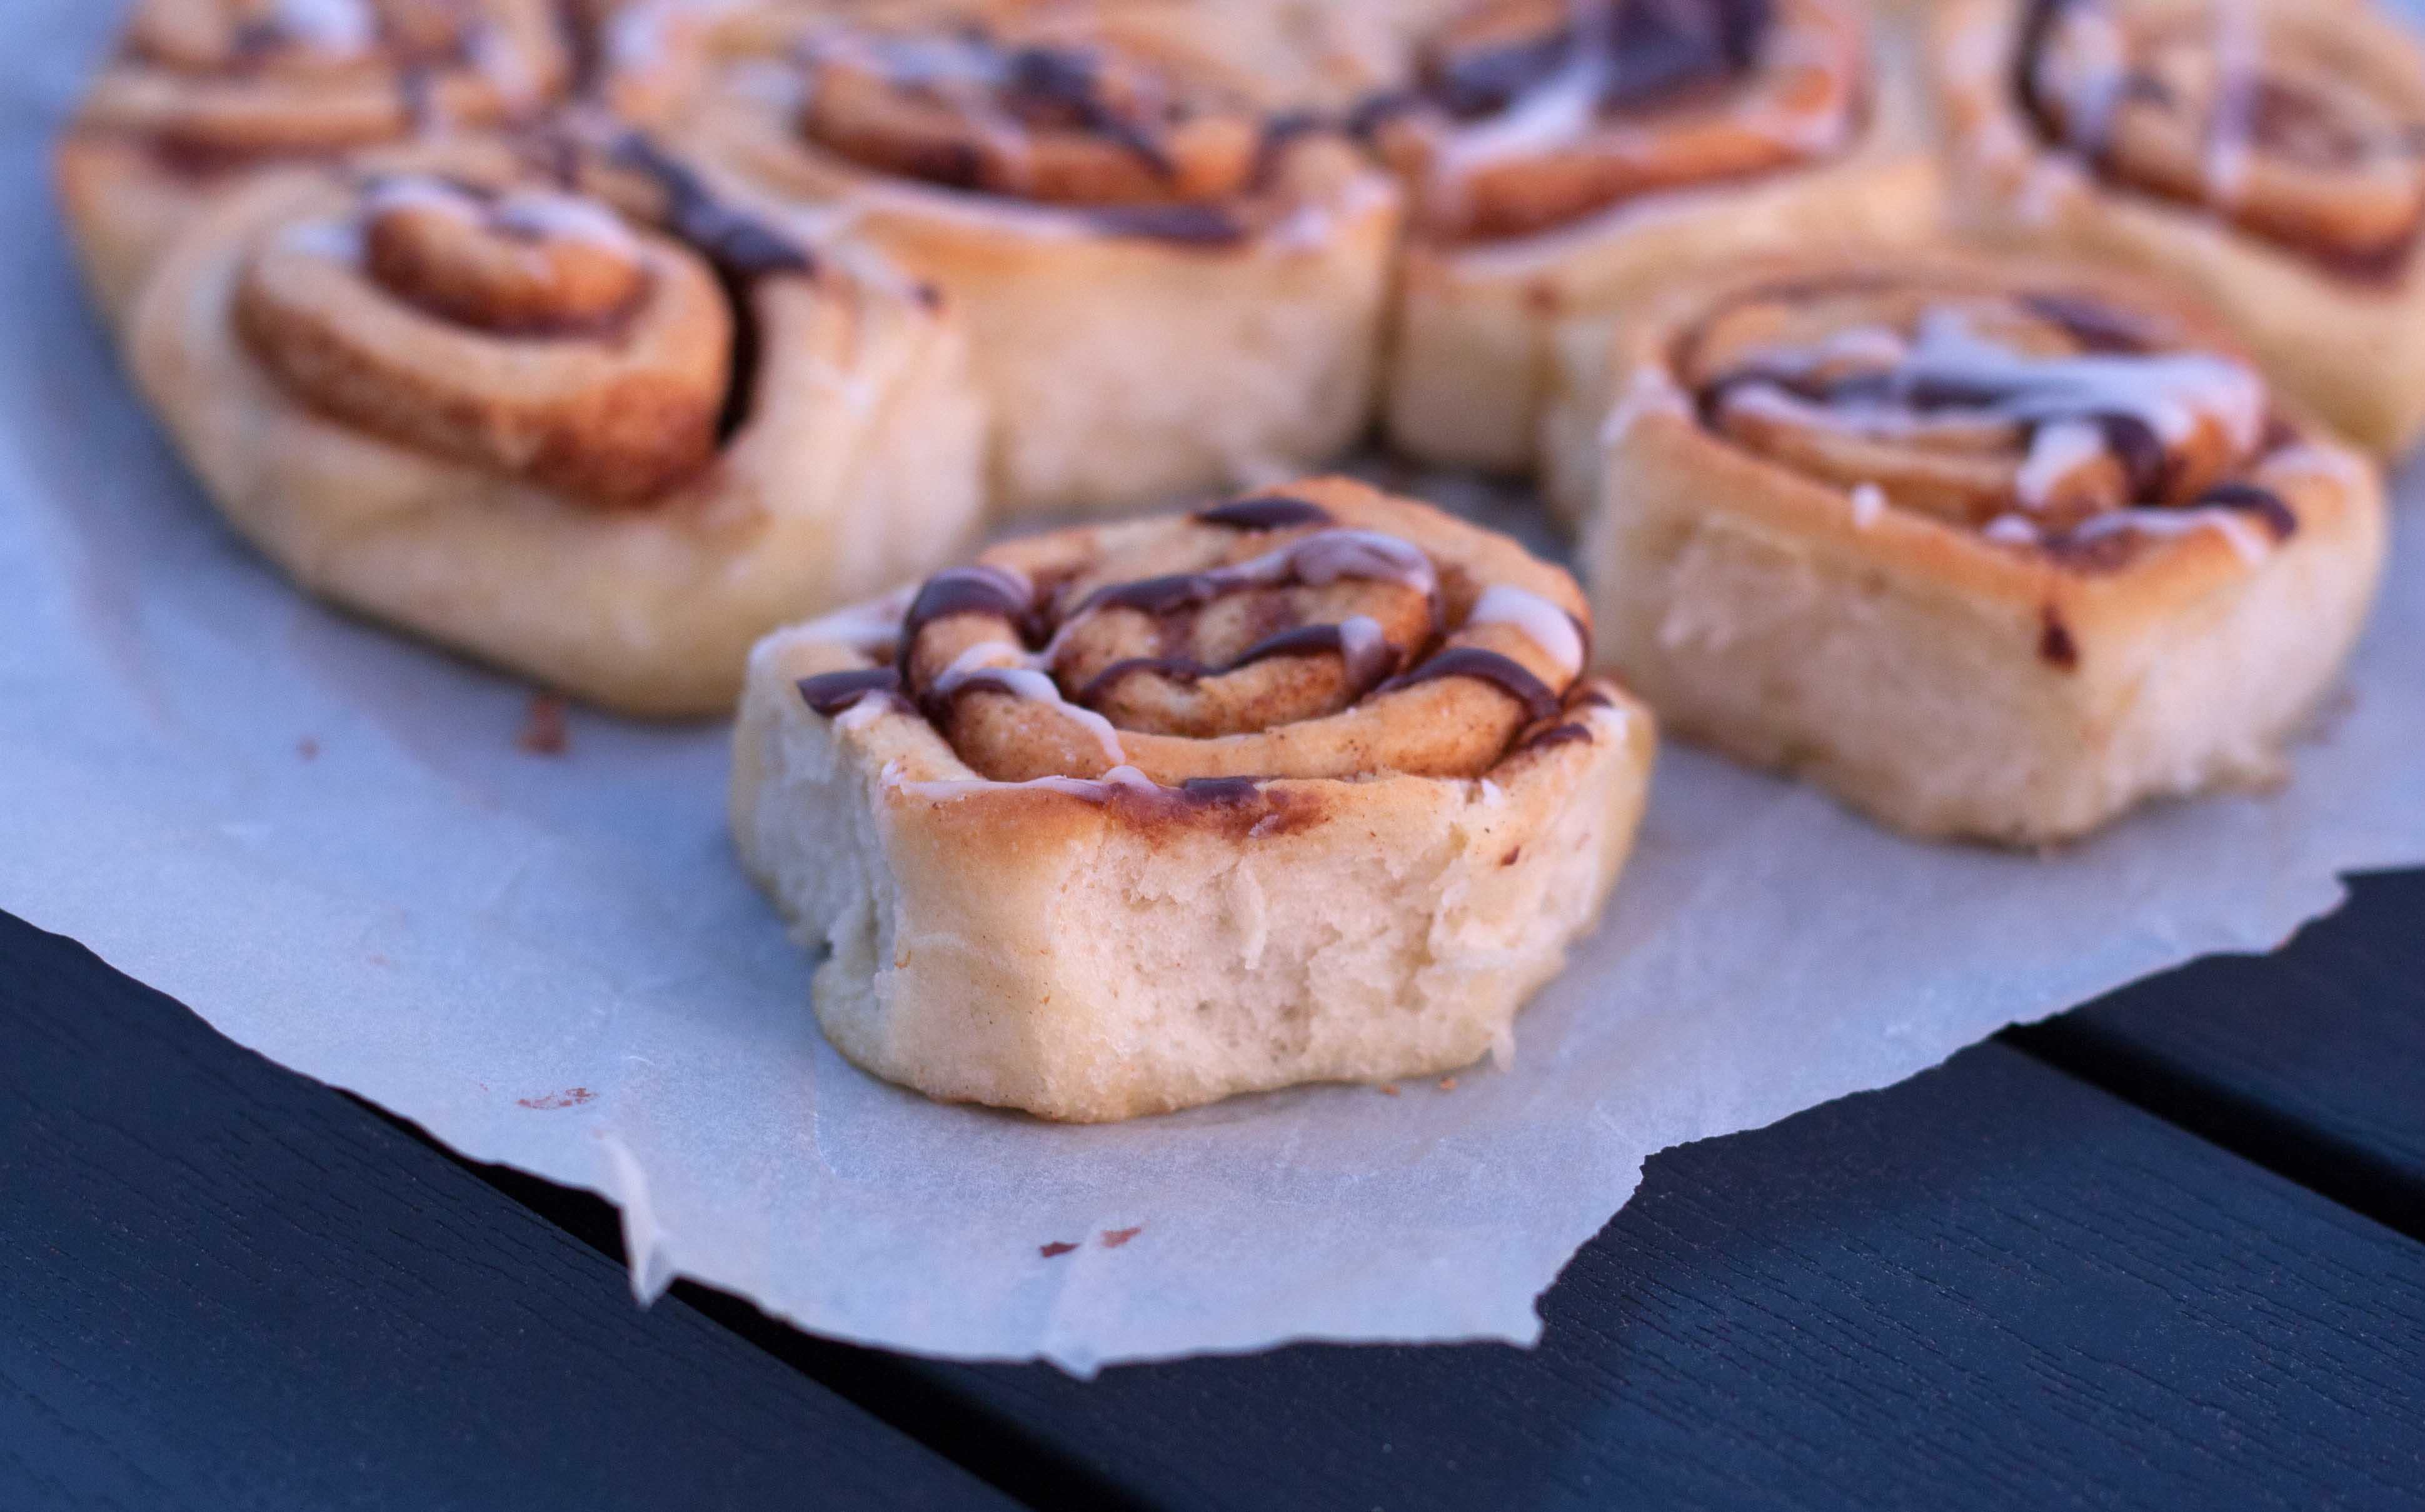 Cinnamon buns (rolls) - with no dry edges!